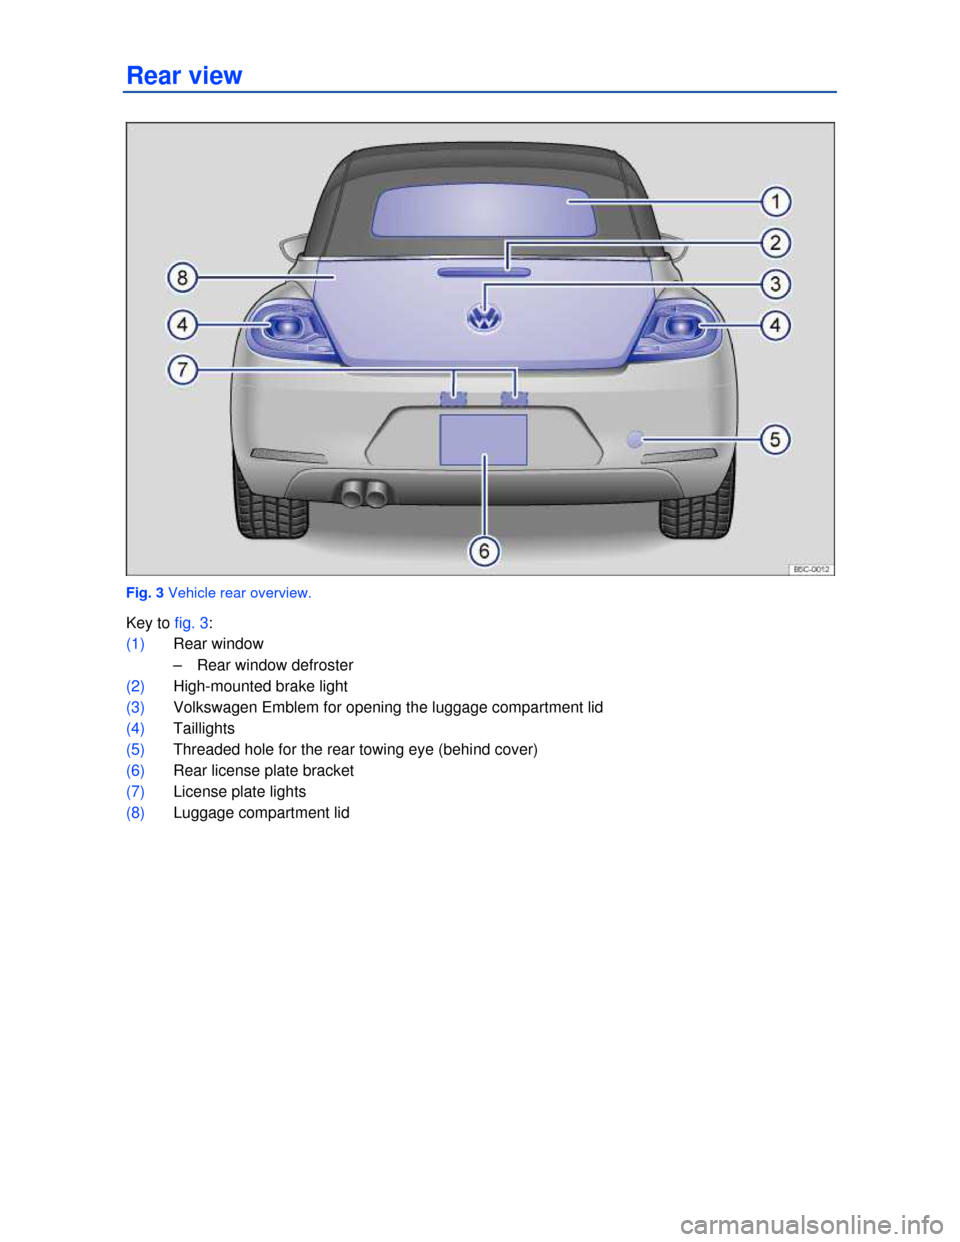 VOLKSWAGEN BEETLE CONVERTIBLE 2013 3.G Owners Manual   Rear view    Fig. 3 Vehicle rear overview.  Key to fig. 3:  (1) Rear window  –  Rear window defroster   (2) High-mounted brake light  (3) Volkswagen Emblem for opening the luggage compartment lid